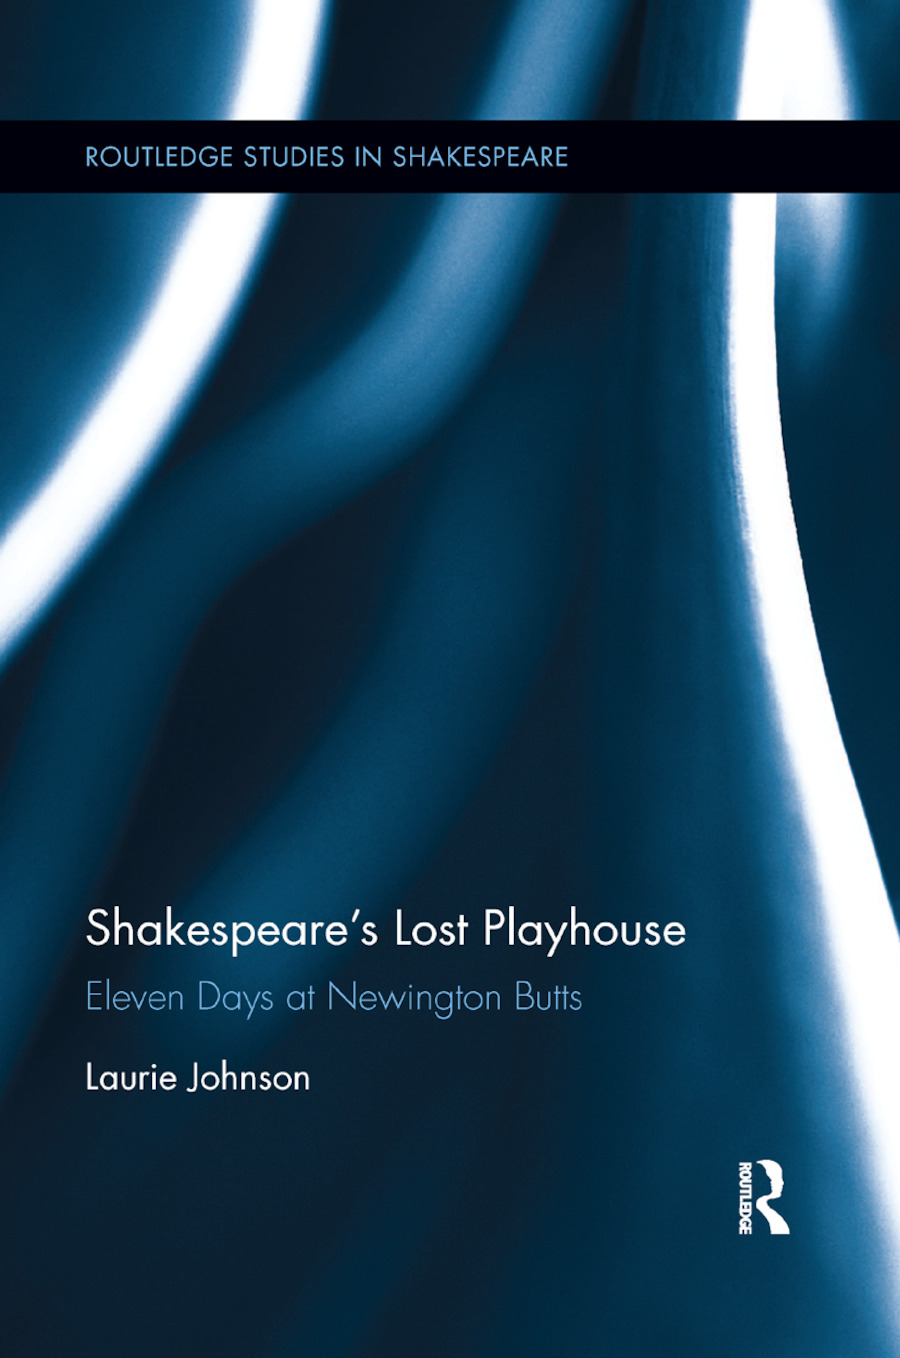 Shakespeare's Lost Playhouse